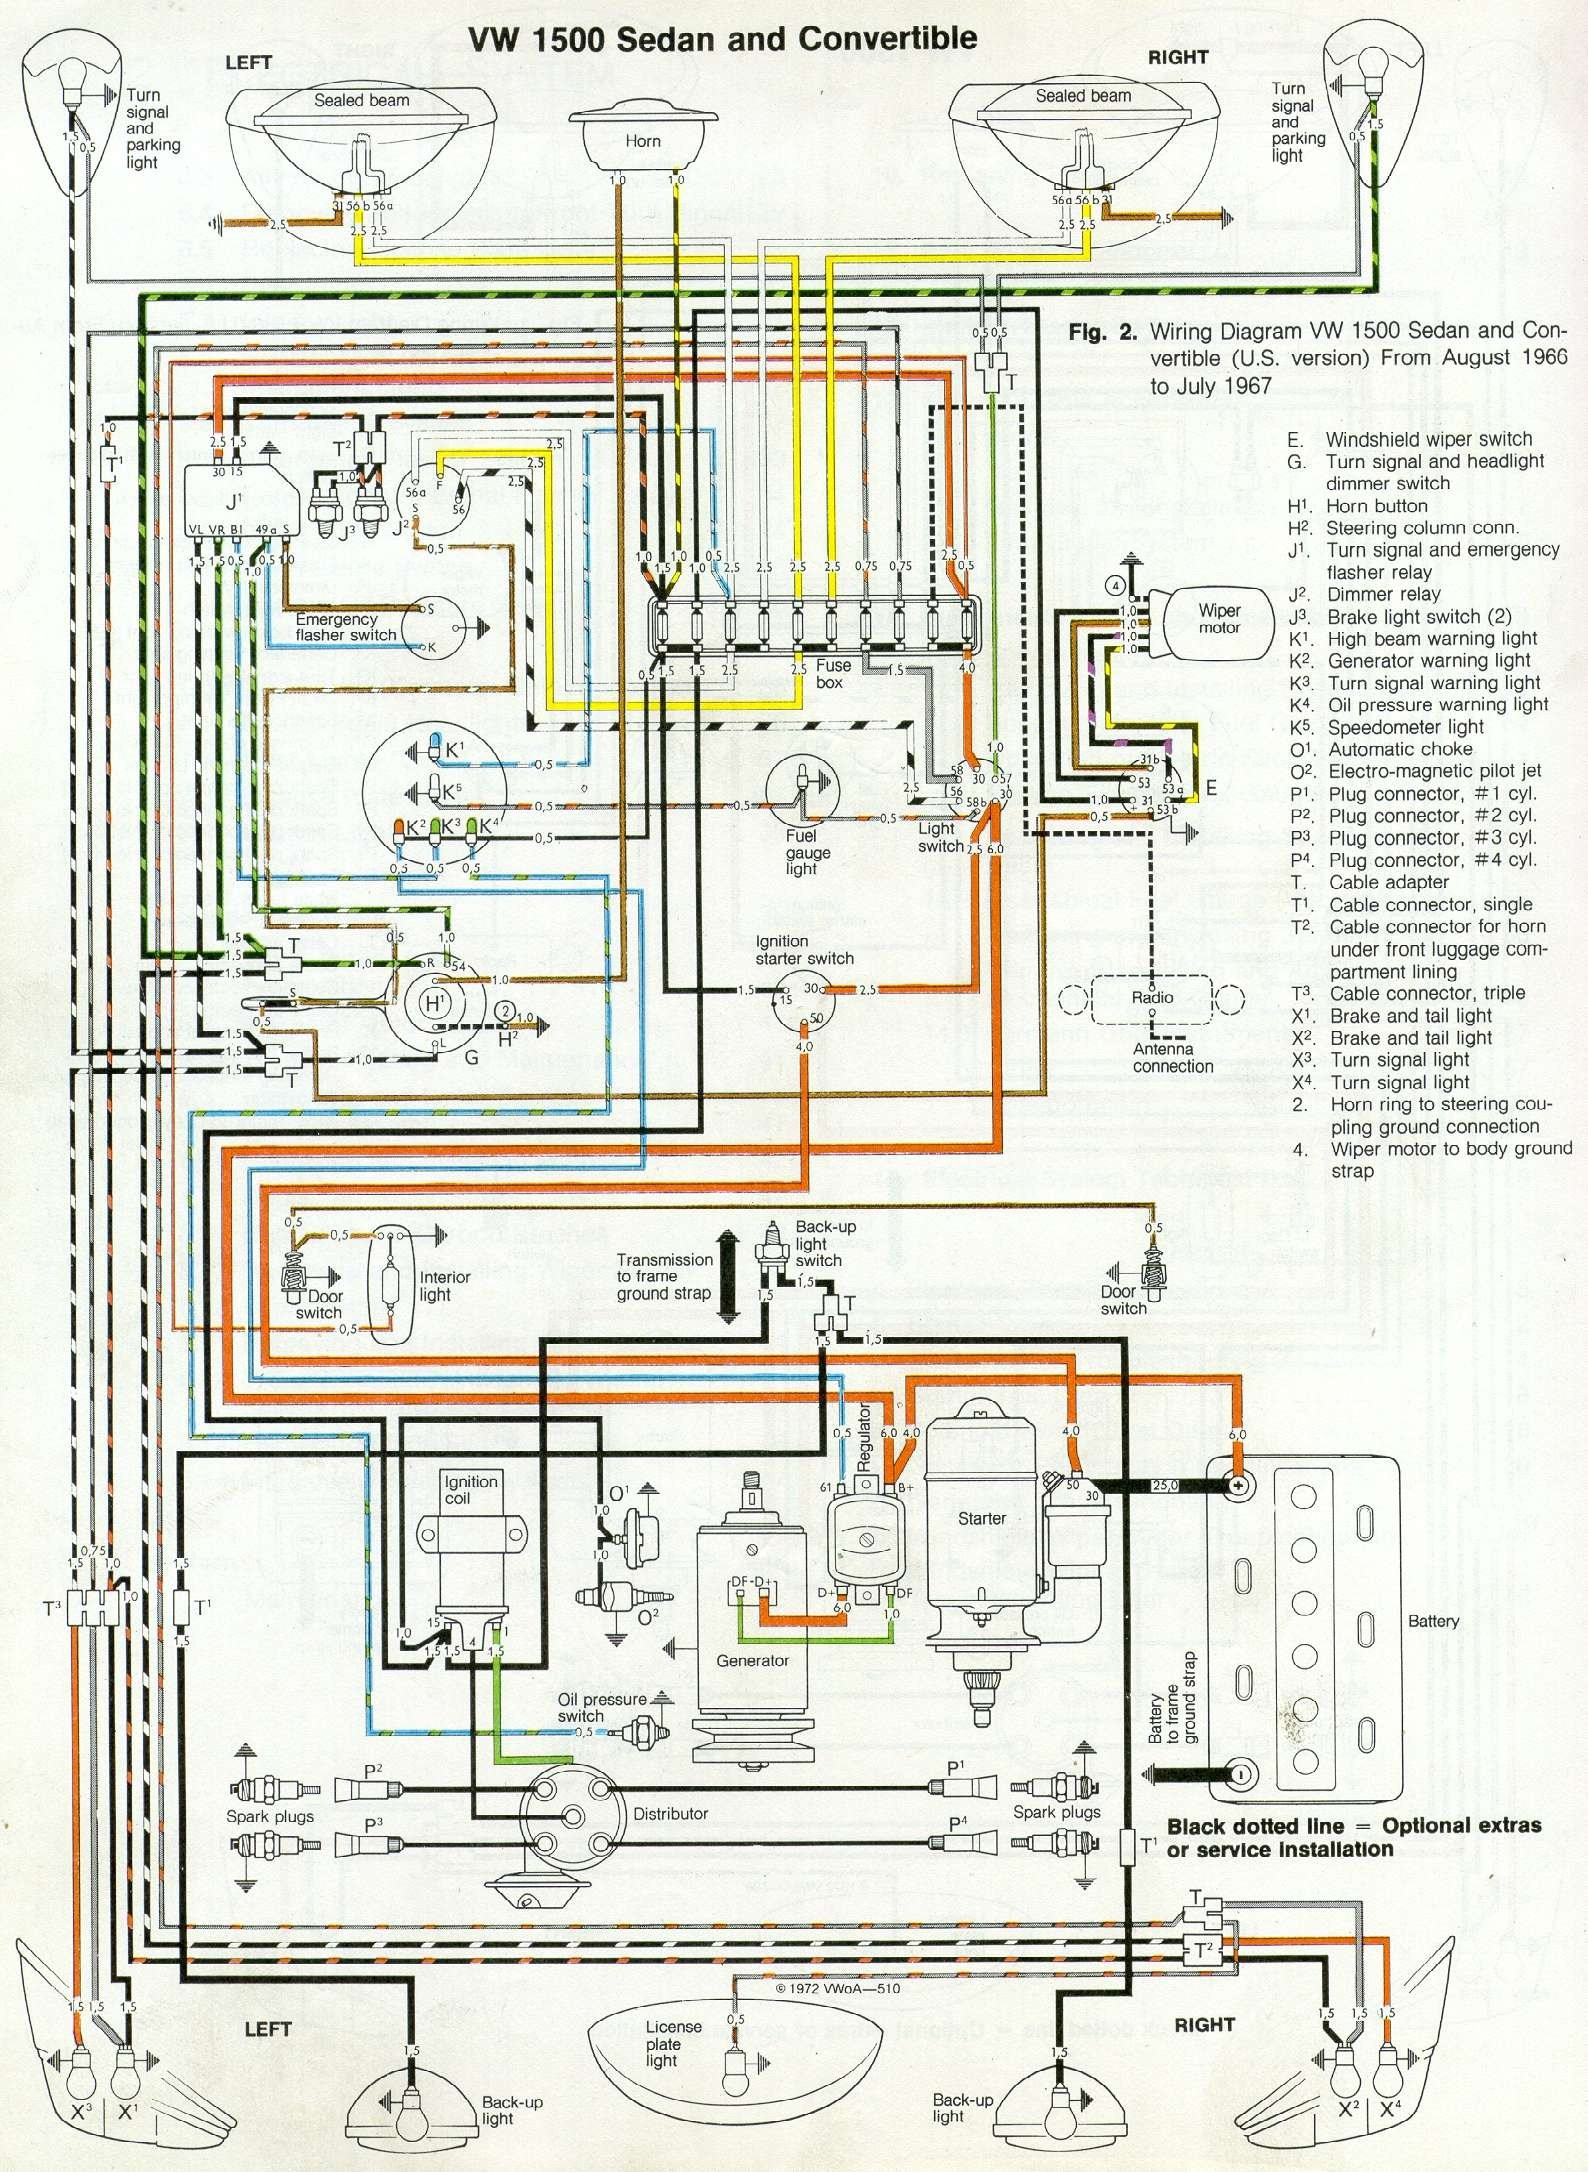 67 beetle wiring diagram u s version 1967 vw beetle 1972 Super Beetle Wiring Diagram vw bug wiring schematic